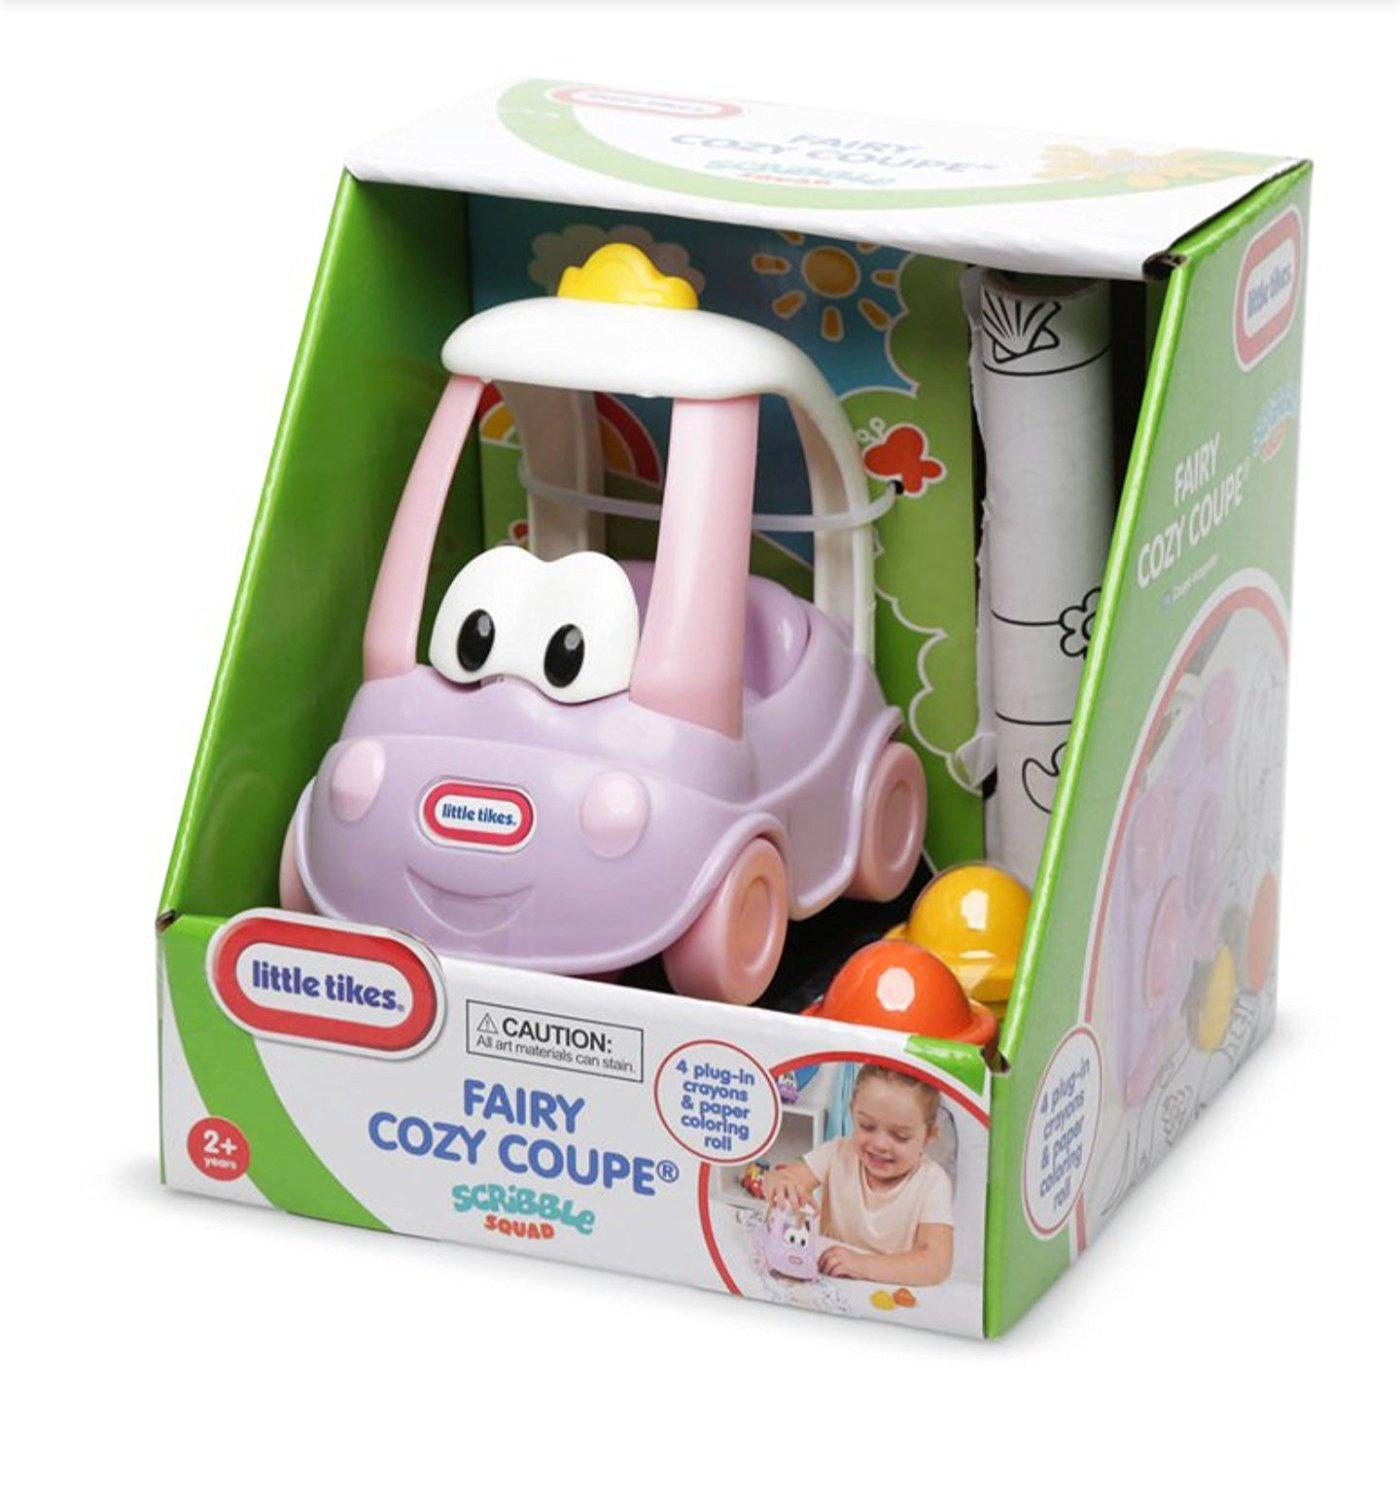 Little Tikes Fairy Cozy Coupe Scribble Squad With 4 Crayons ...